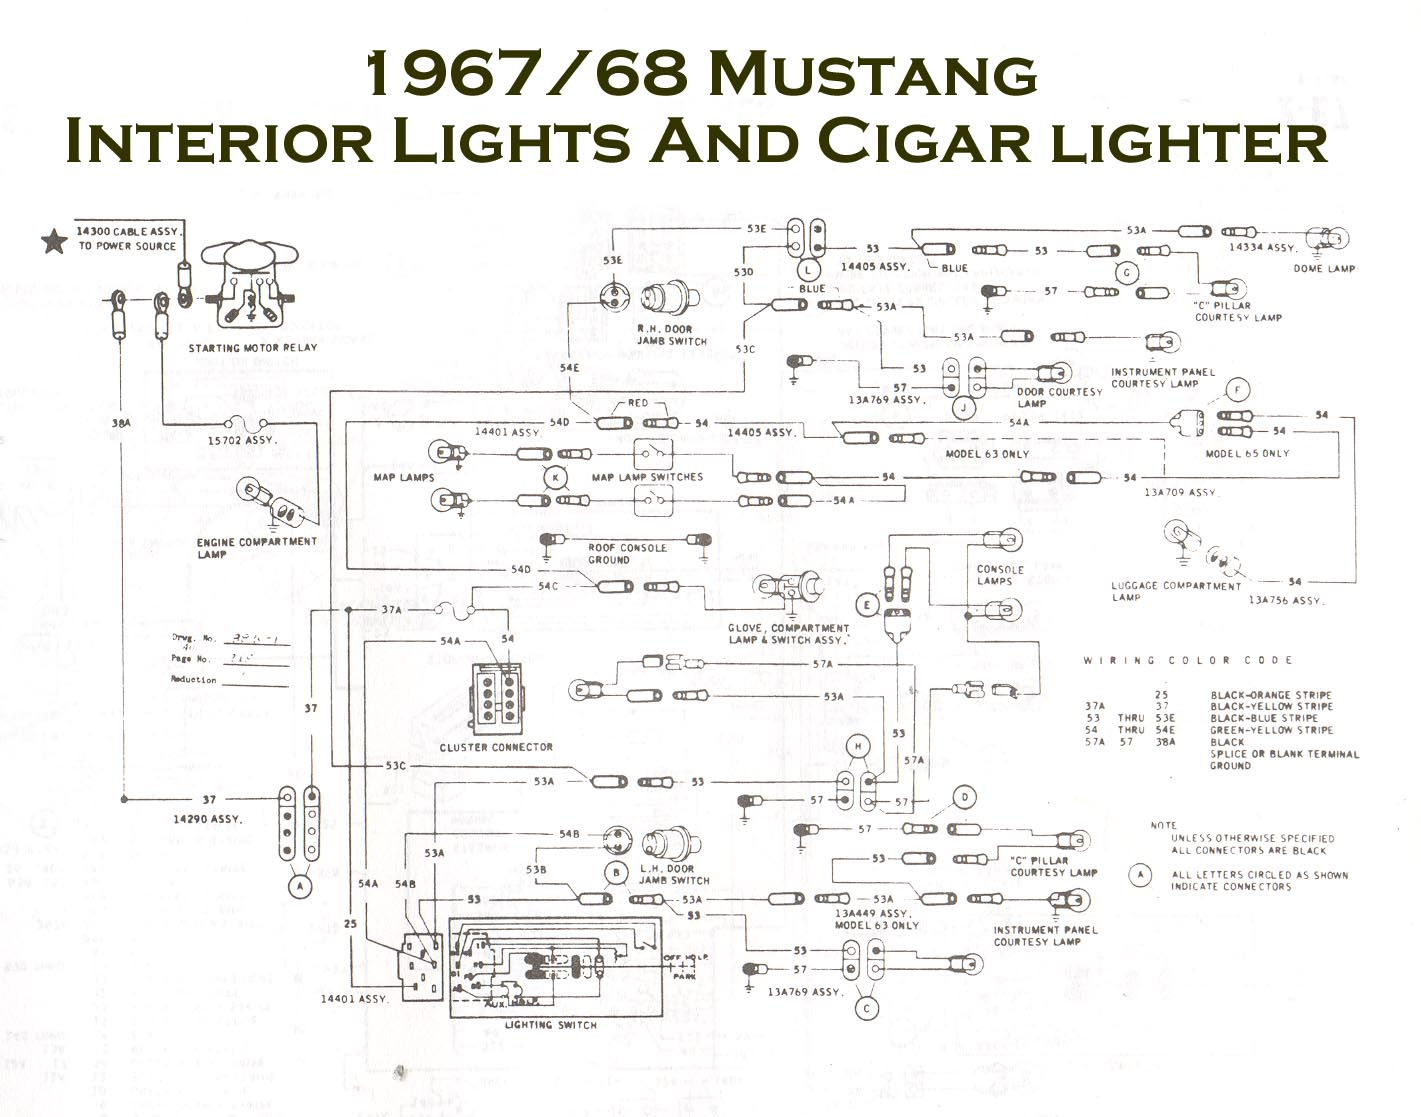 Vintage Mustang Wiring Diagrams 1987 Ford Stereo Harness Color Code Schematic 1967 68 Console Diagram